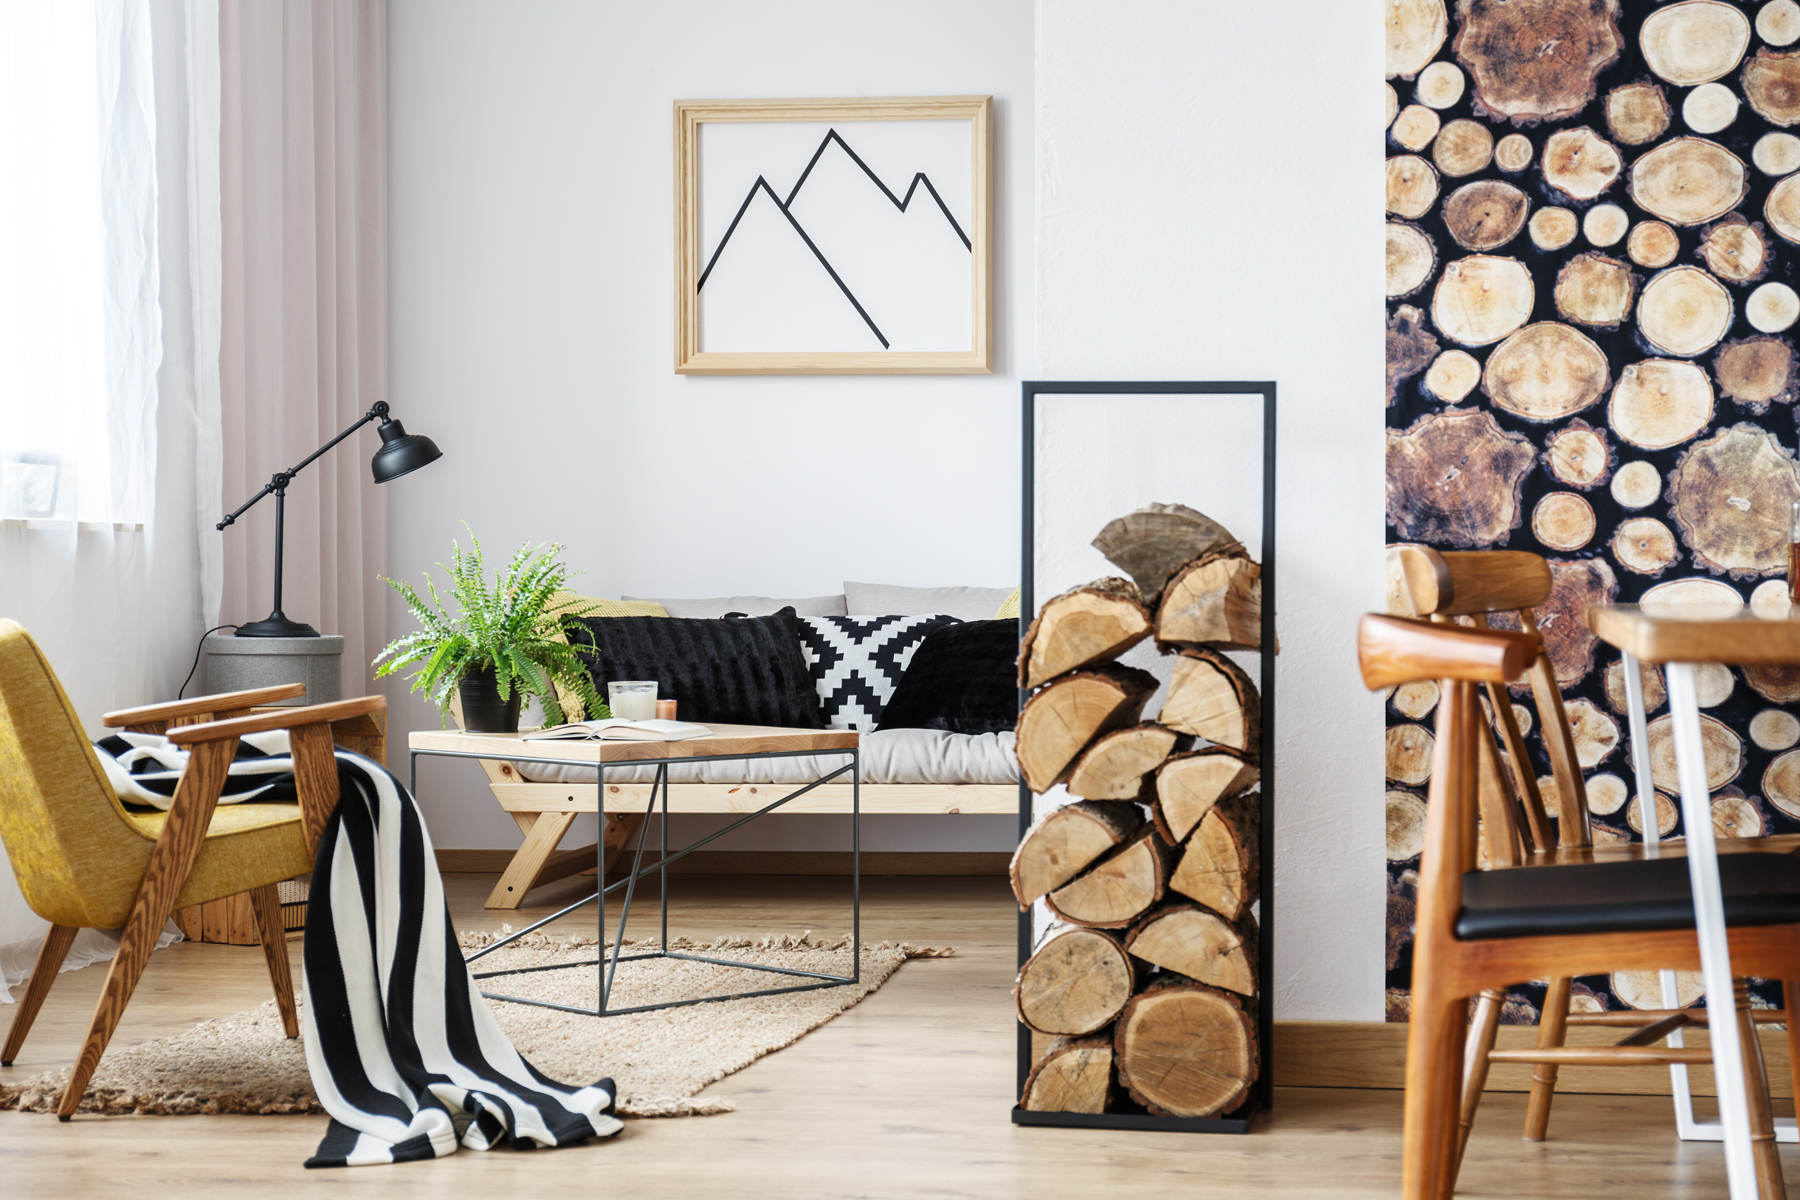 Cozy winter interior design for minimalist with wooden accessories, warm colors and fire logs